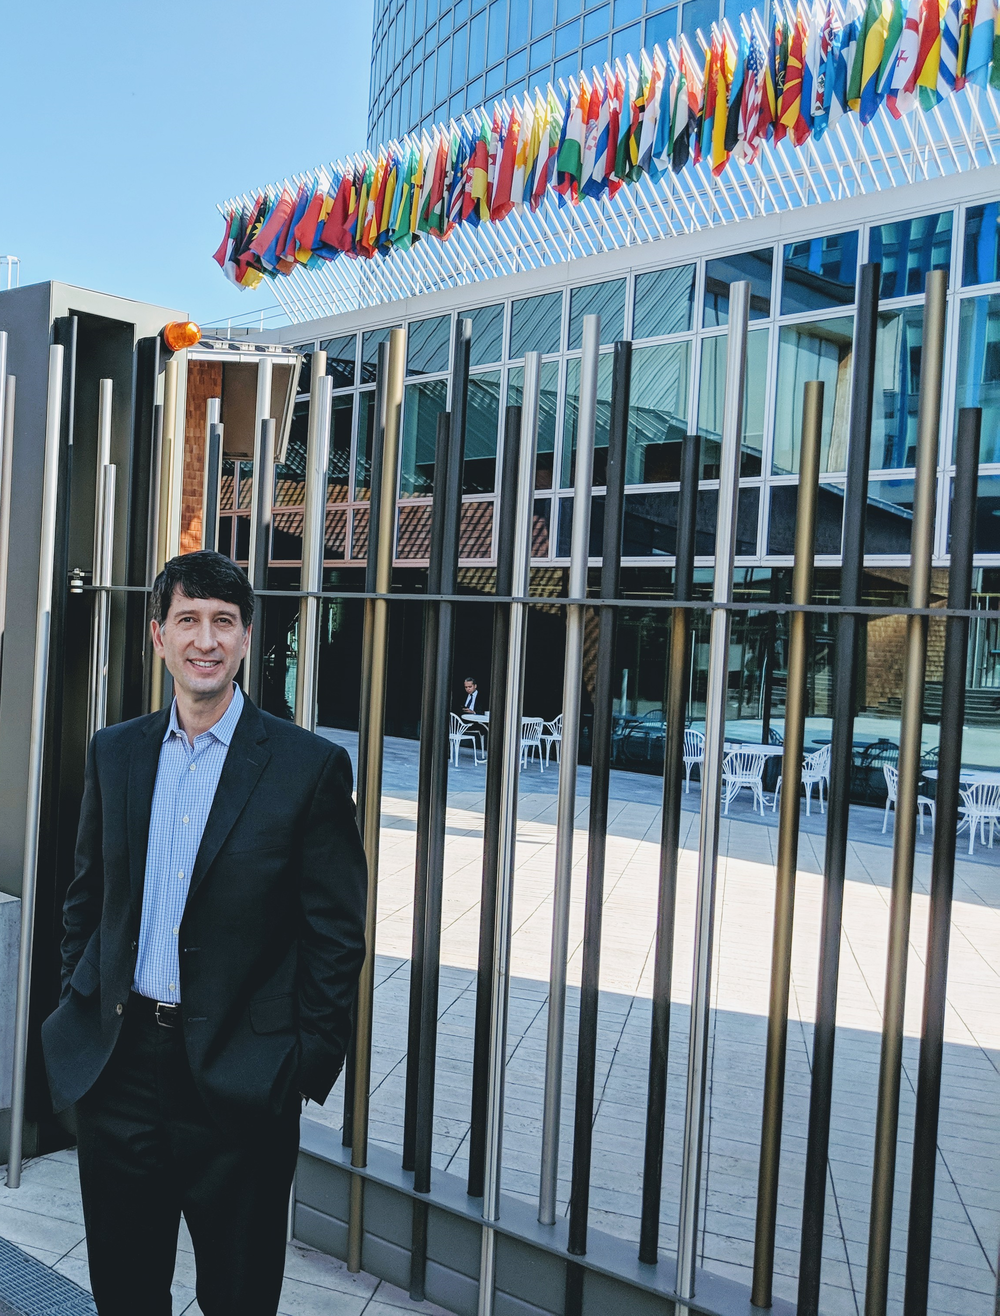 Doug Isenberg outside the offices of the World Intellectual Property Organization in Geneva, October 8, 2018